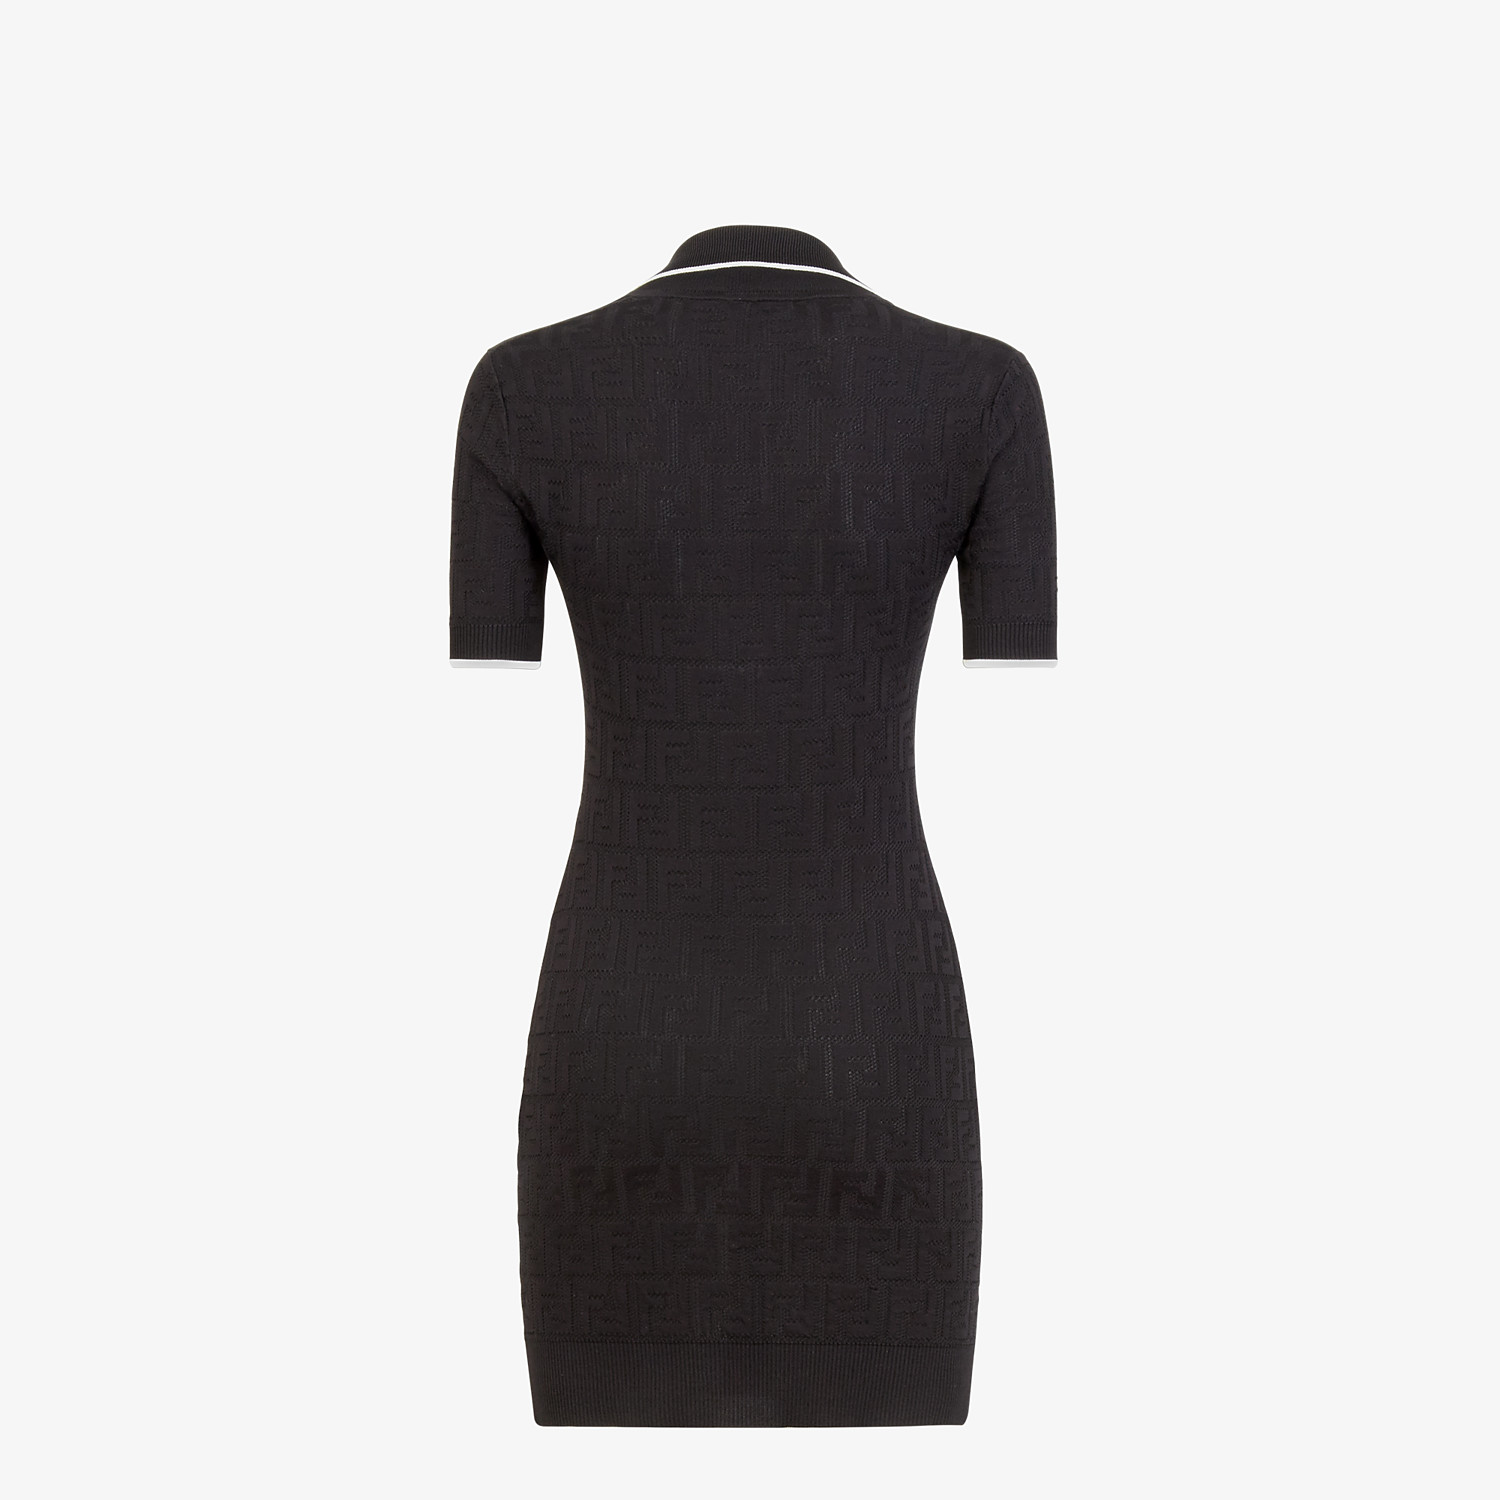 FENDI DRESS - Black viscose and cotton dress - view 2 detail